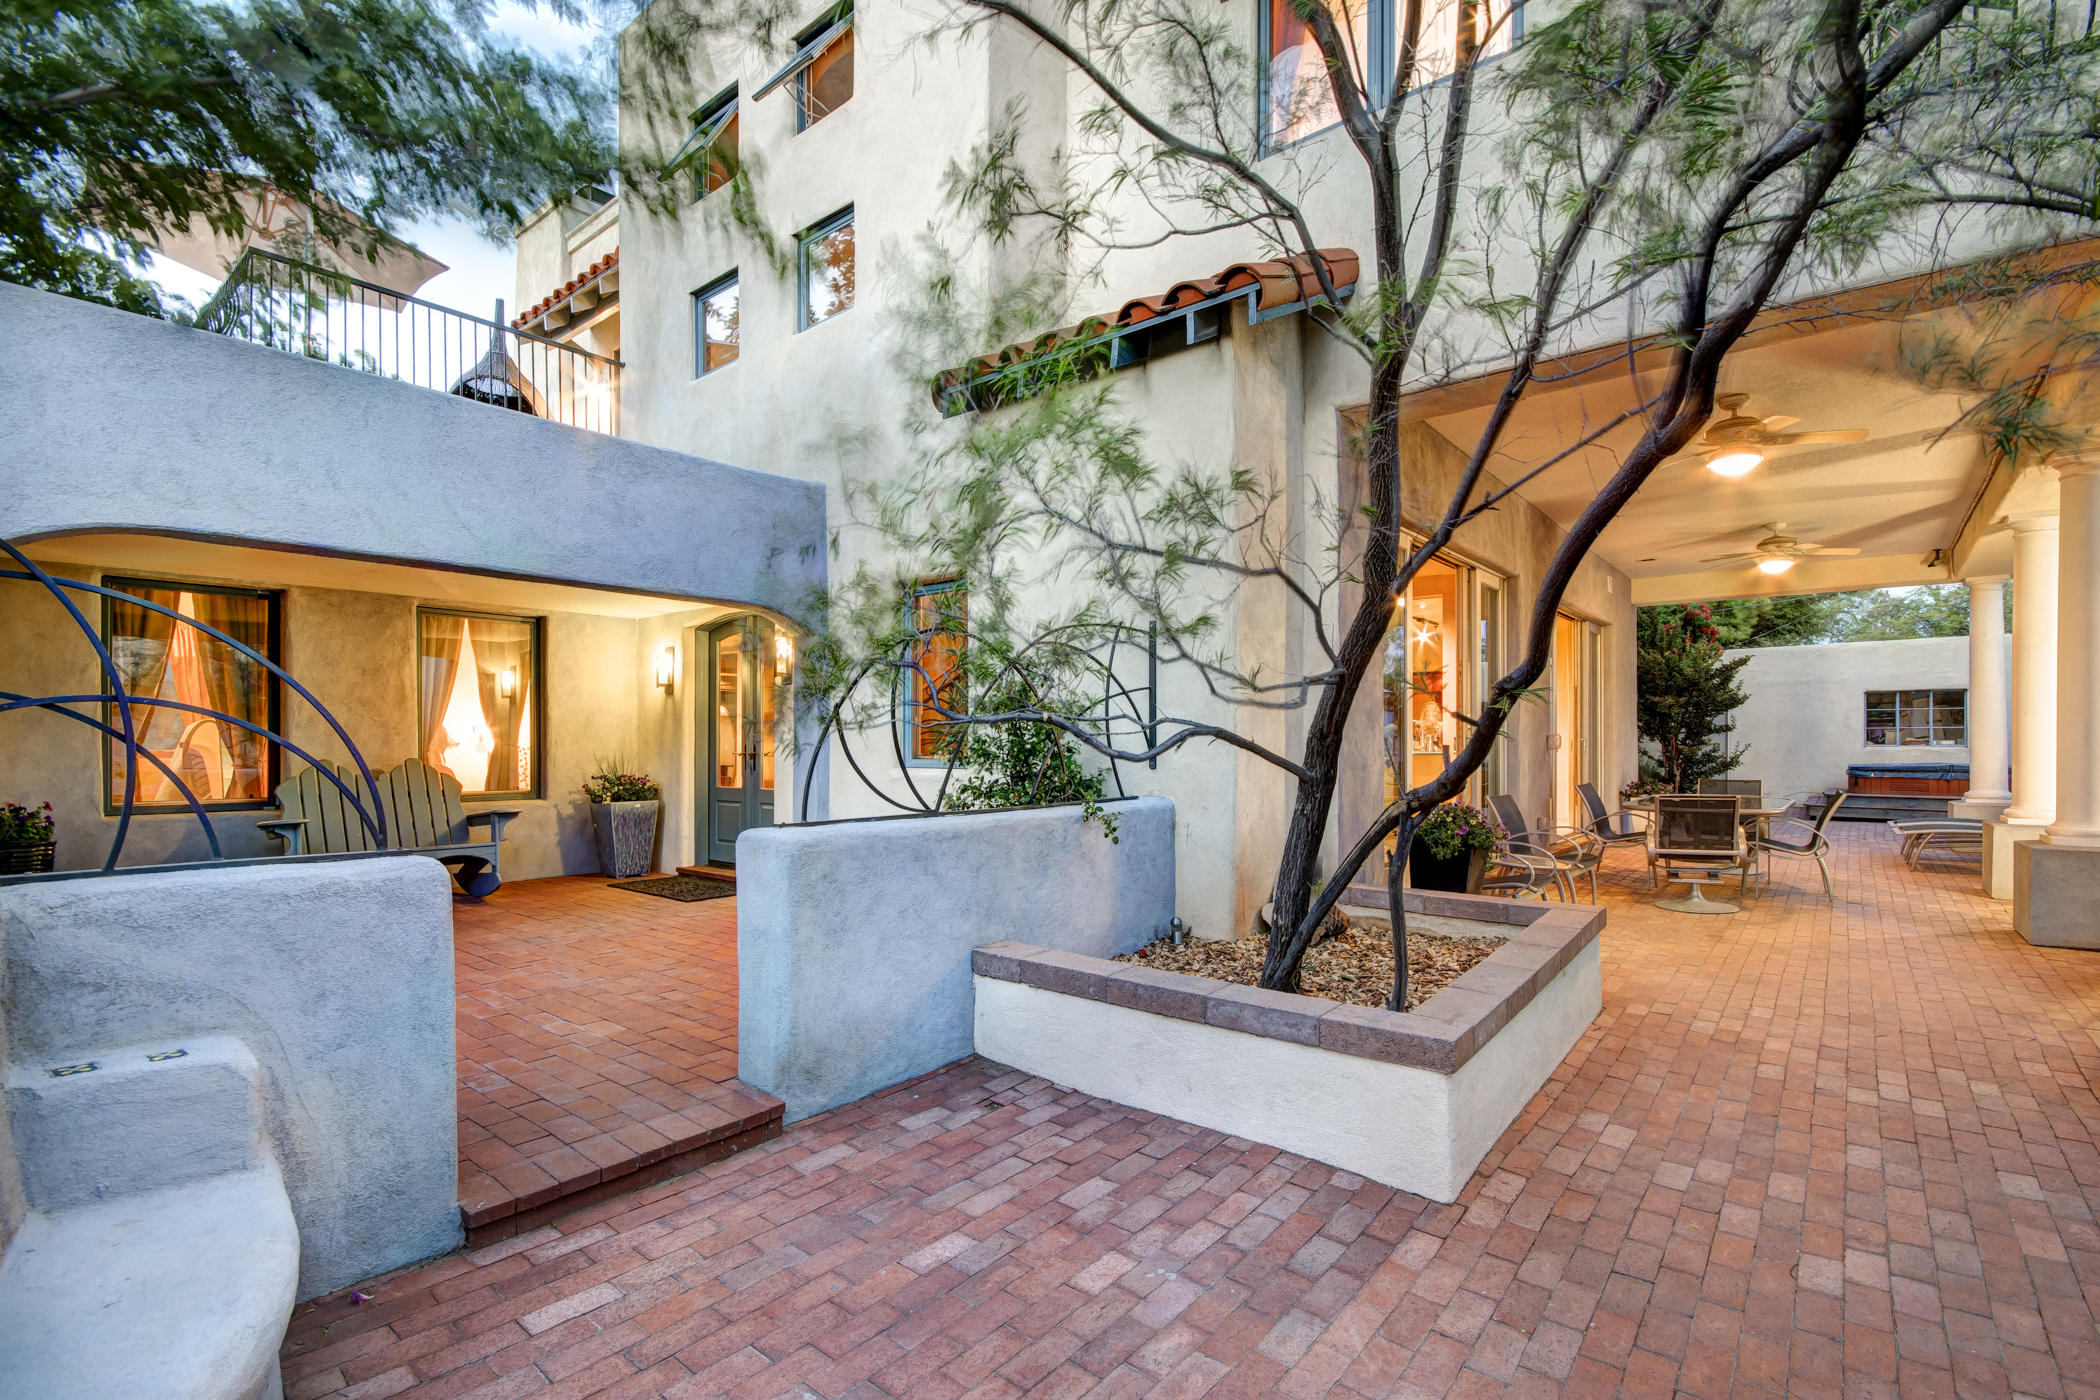 610 RICHMOND DRIVE NE, ALBUQUERQUE, NM 87106